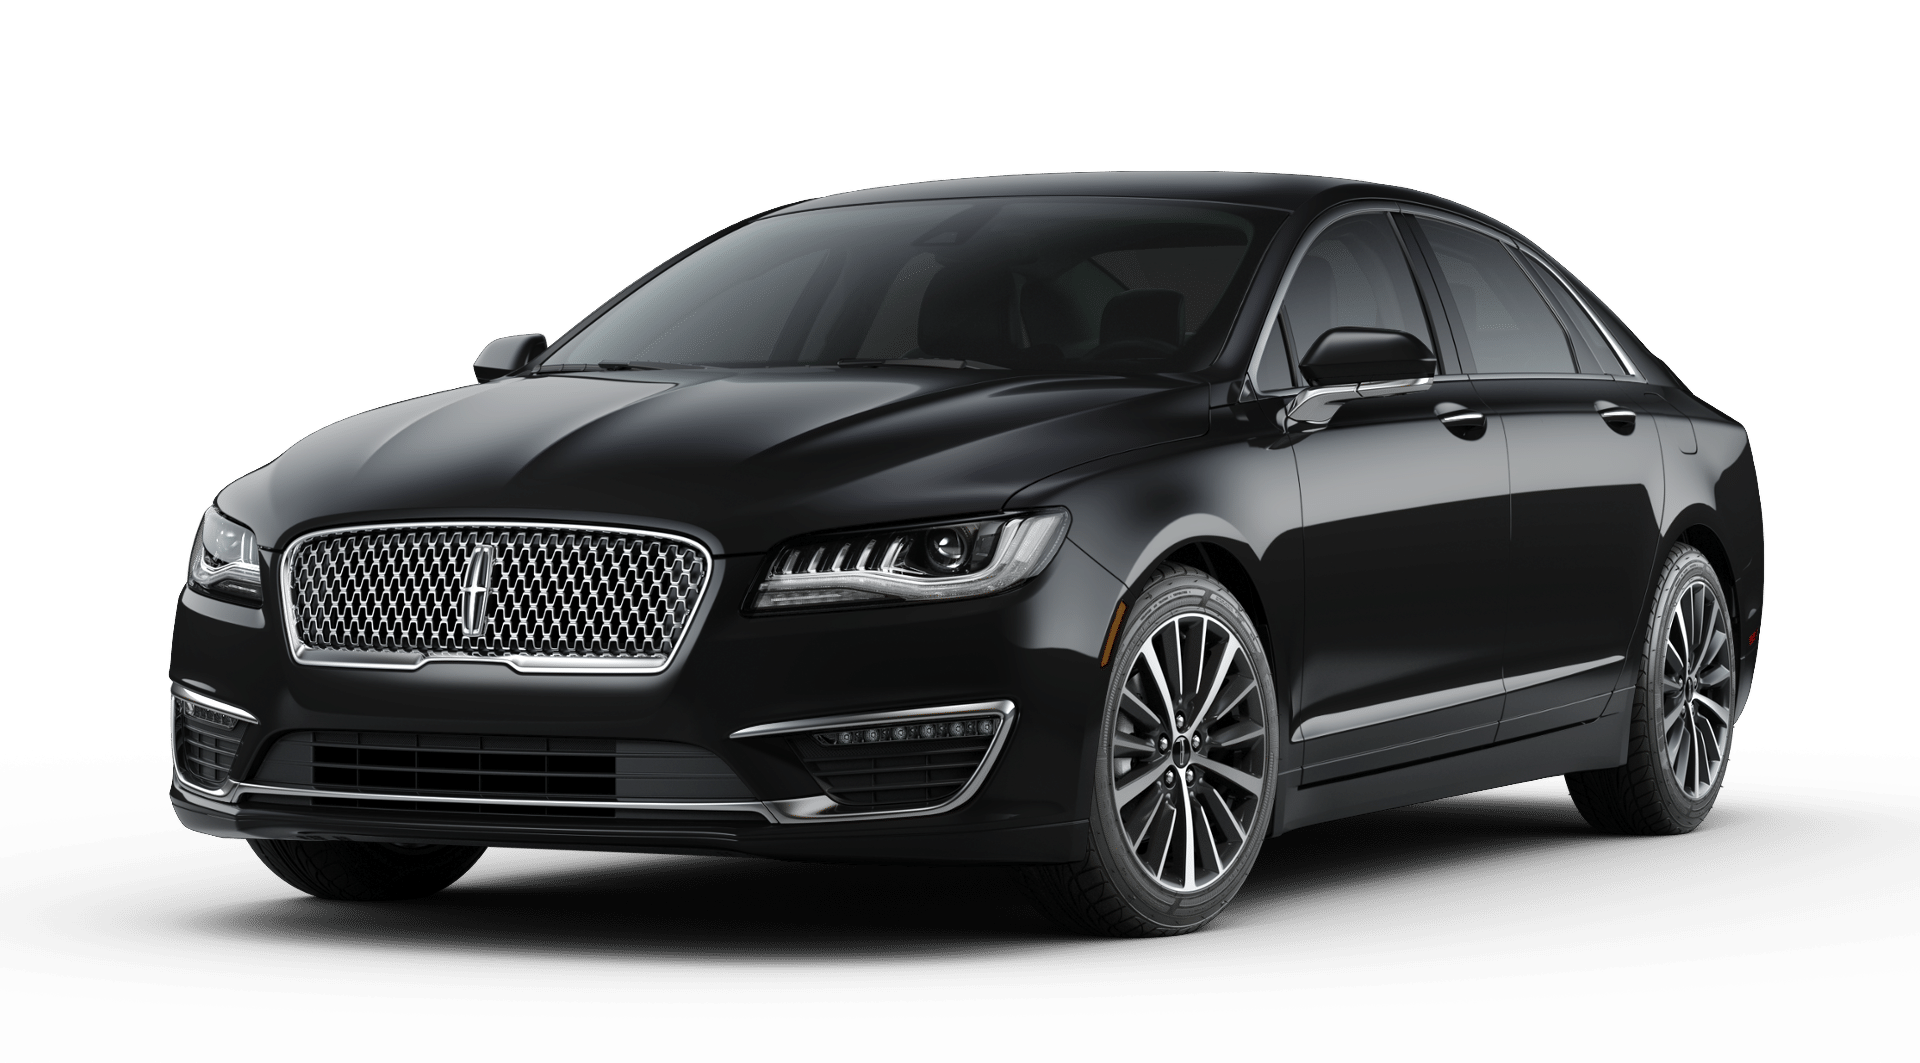 Lincoln Mkz Lease >> New Lincoln Specials Lease Deals Rebates Incentives Los